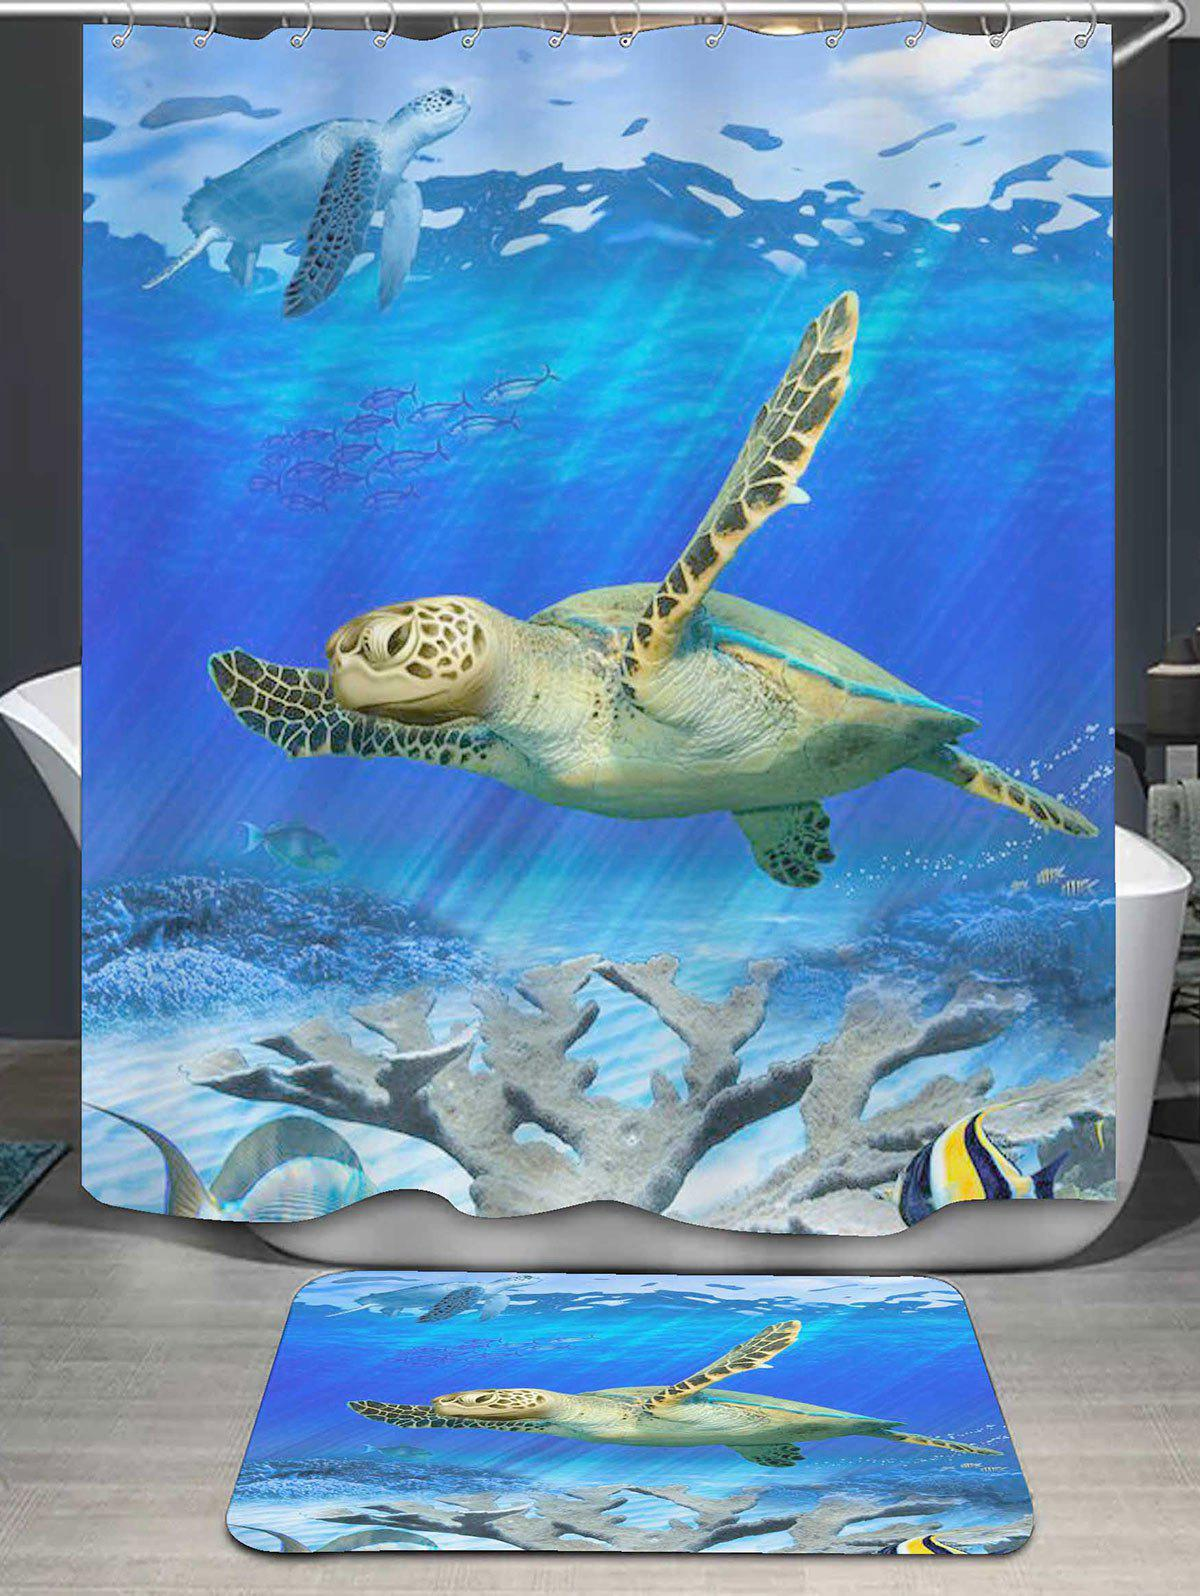 Sea World Turtle Printed Shower Curtain and RugHOME<br><br>Color: OCEAN BLUE; Products Type: Shower Curtains; Materials: Flannel,Polyester; Pattern: Animal; Style: Cute; Package Contents: 1 x Shower Curtain 1 x Rug;